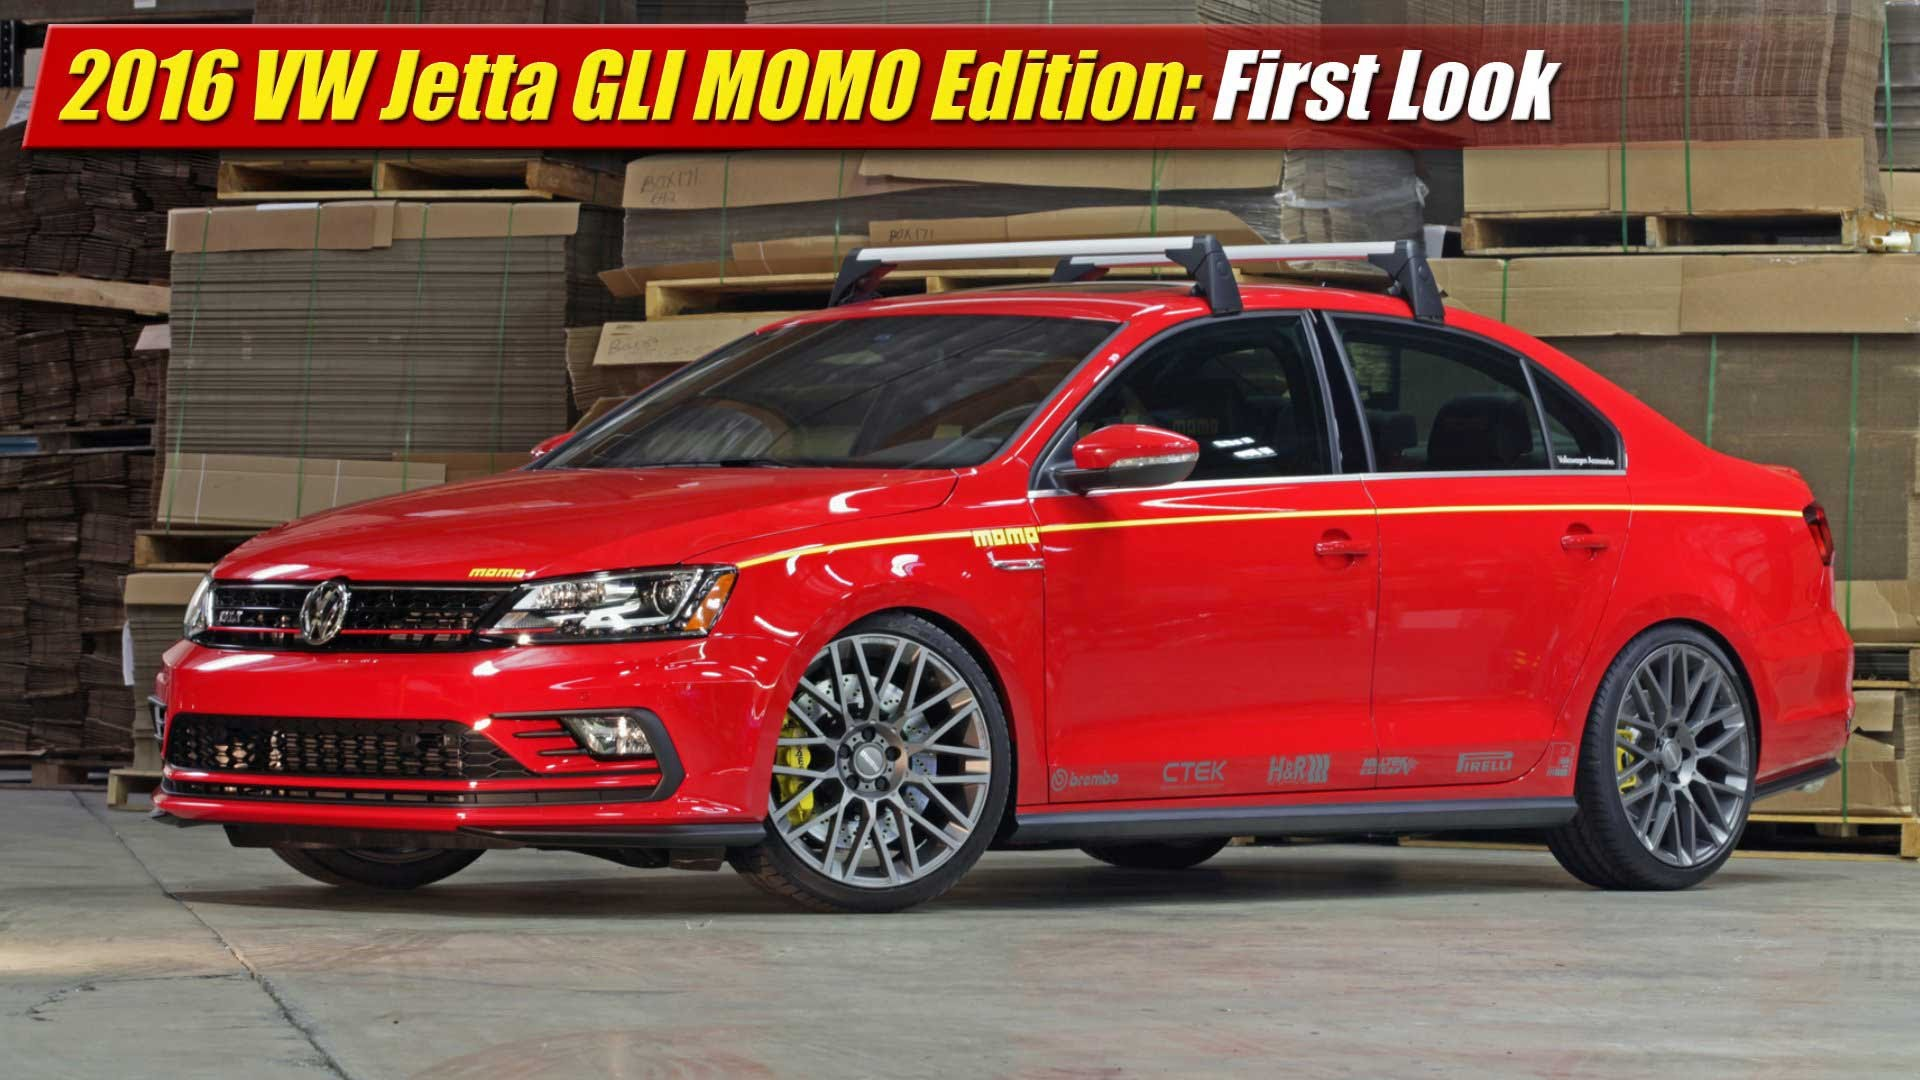 first look 2016 volkswagen jetta gli momo edition testdriven tv. Black Bedroom Furniture Sets. Home Design Ideas